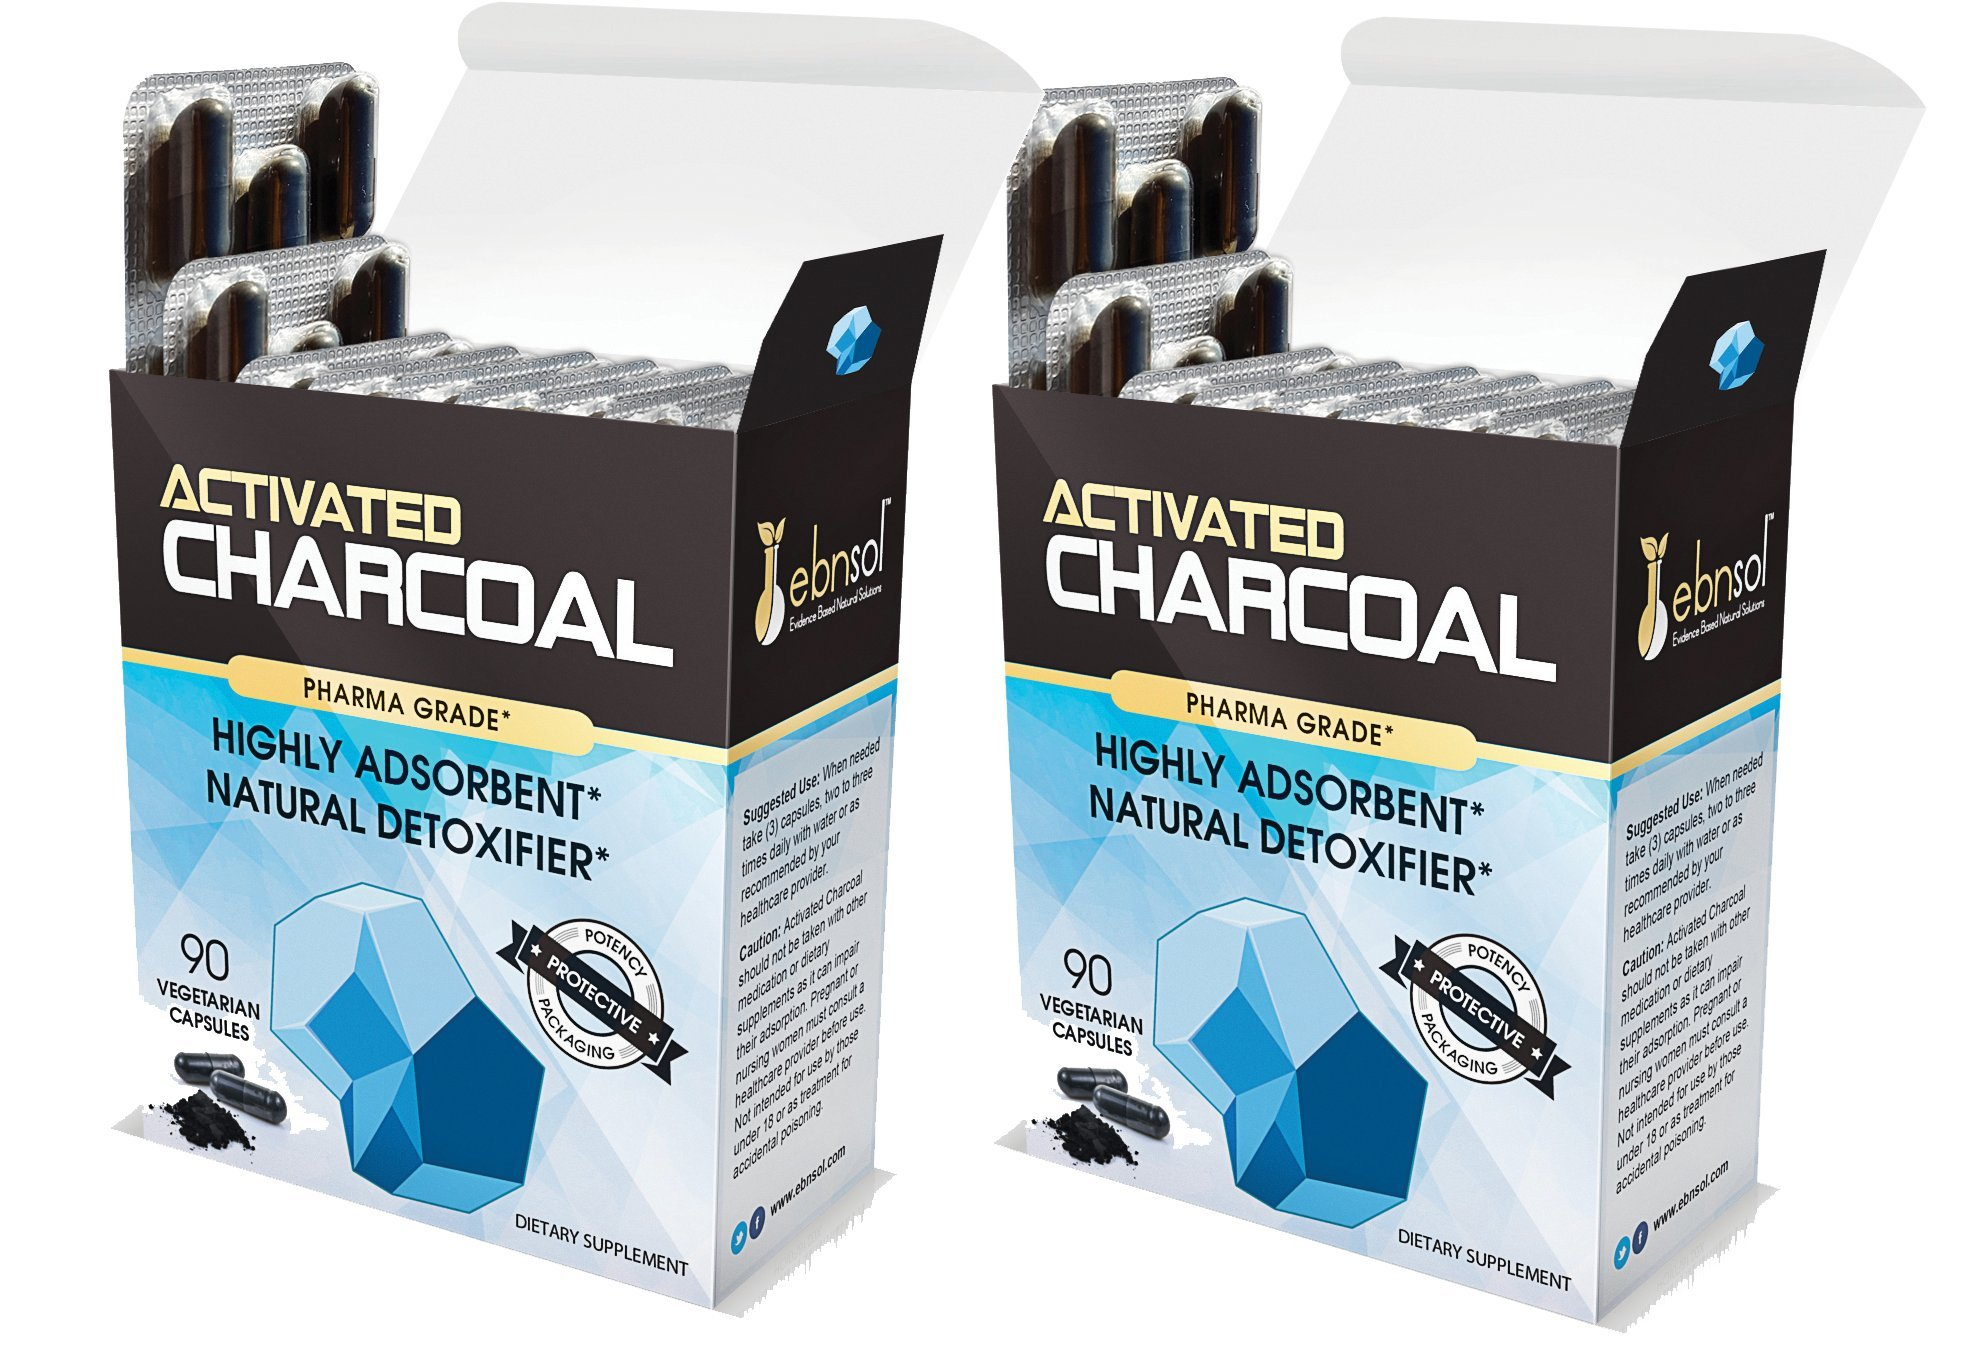 Activated Charcoal Supplement, Vegetarian Capsules by Ebnsol Inc (180caps(2-Pack))